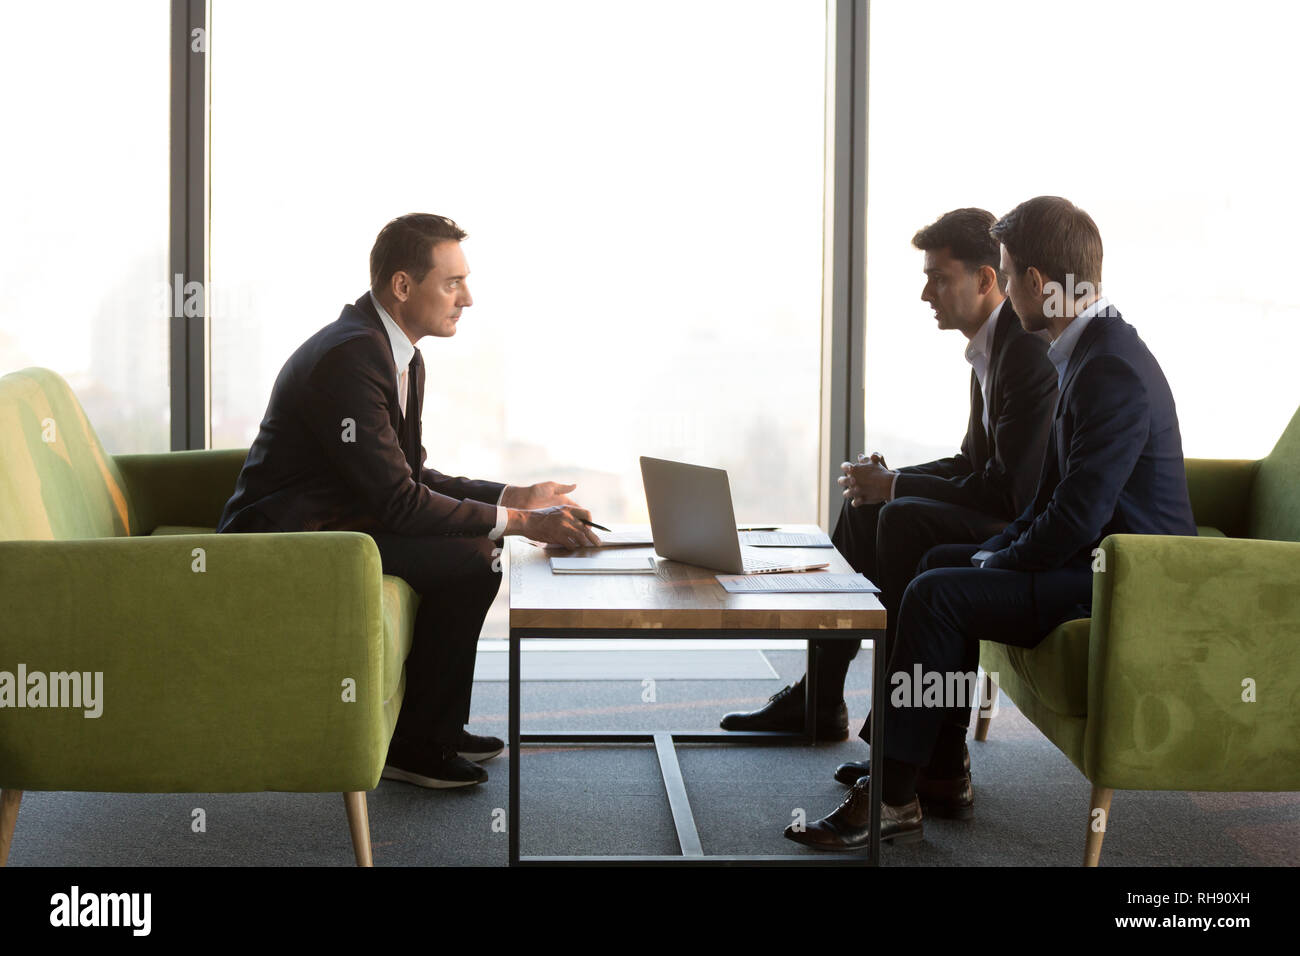 Diverse serious businessmen discuss new international project meeting investment adviser - Stock Image